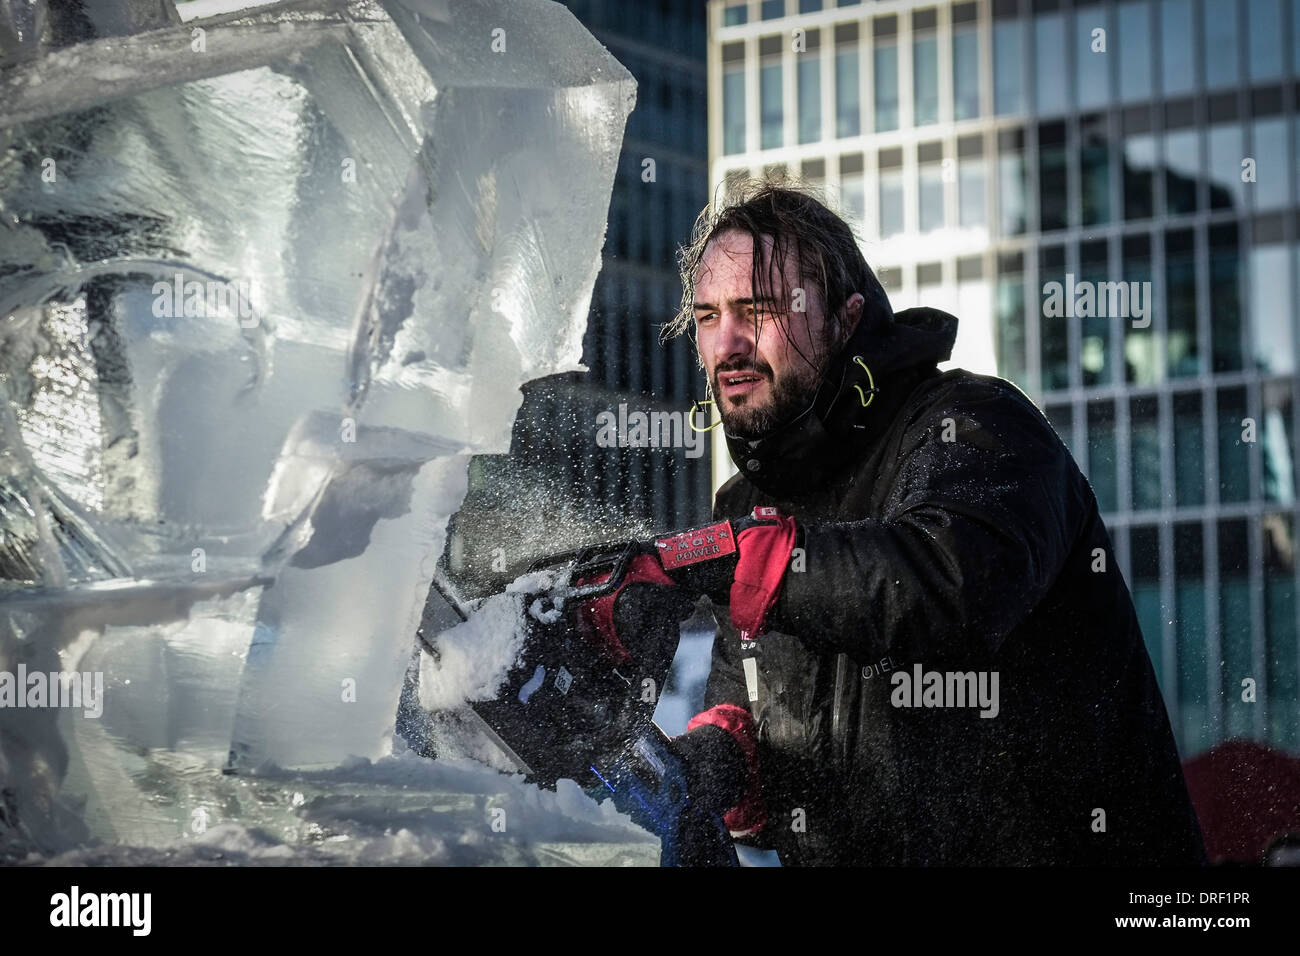 Bruno Fleurit from the the Spanish team creating their sculpture as part of the London Ice Sculpture Festival. - Stock Image